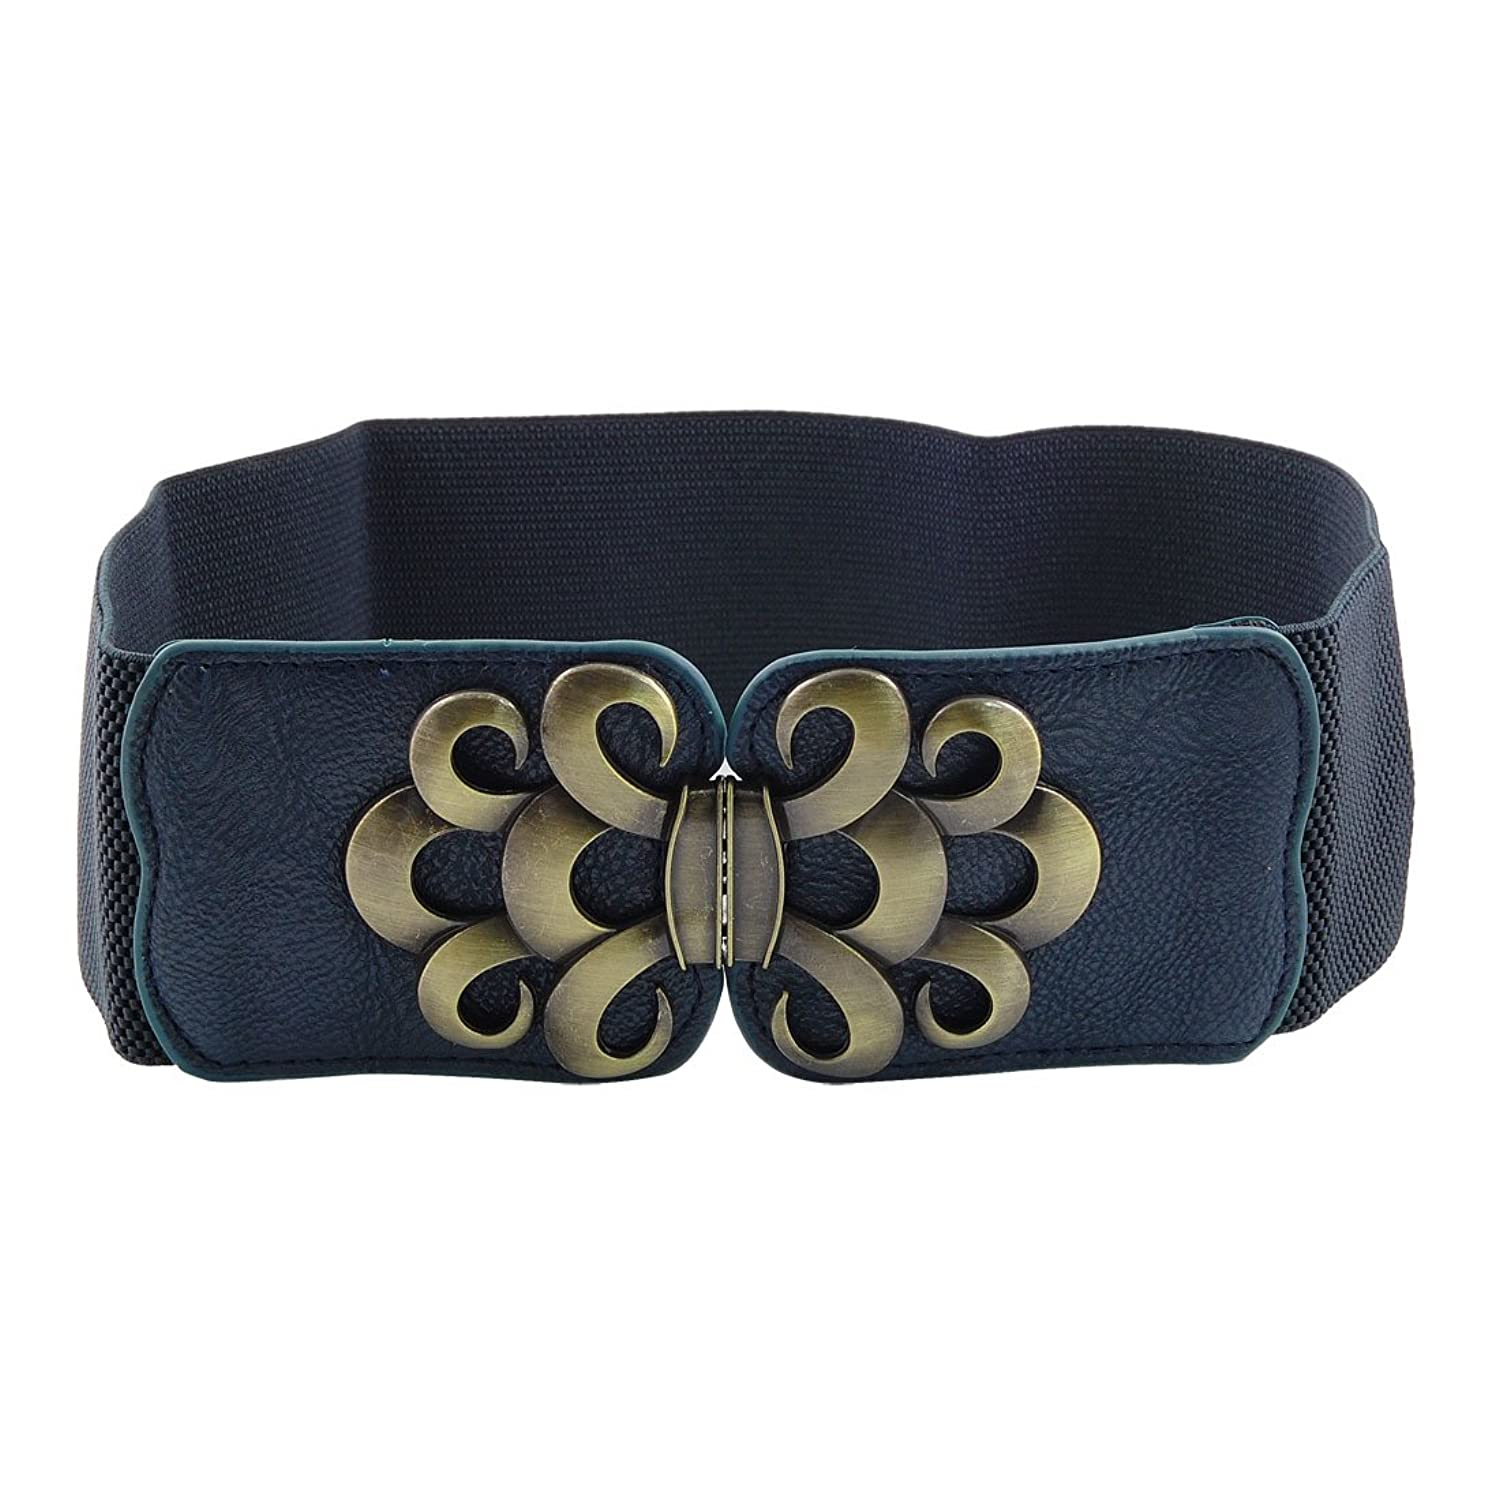 Wave Design Interlocking Buckle Elastic Waist Belt Navy Blue for Women